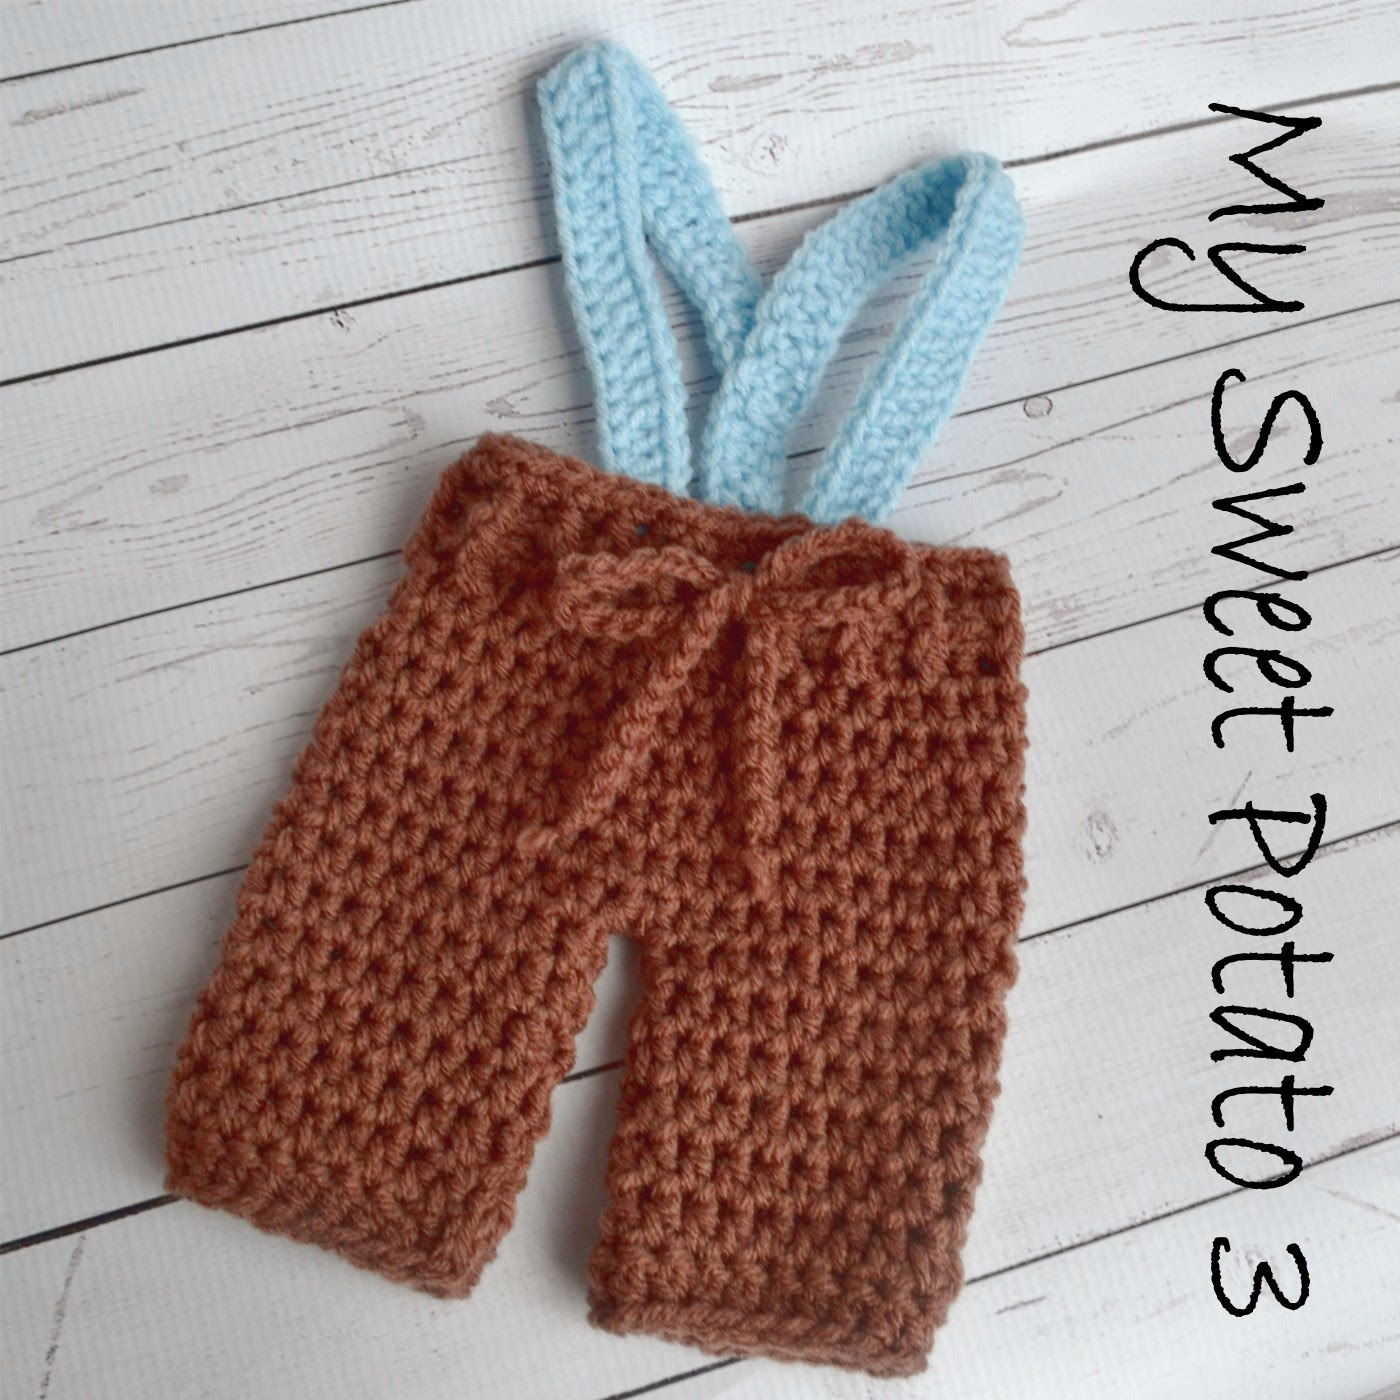 Pants Shorts And Suspender Pattern Release Sweet Potato 3